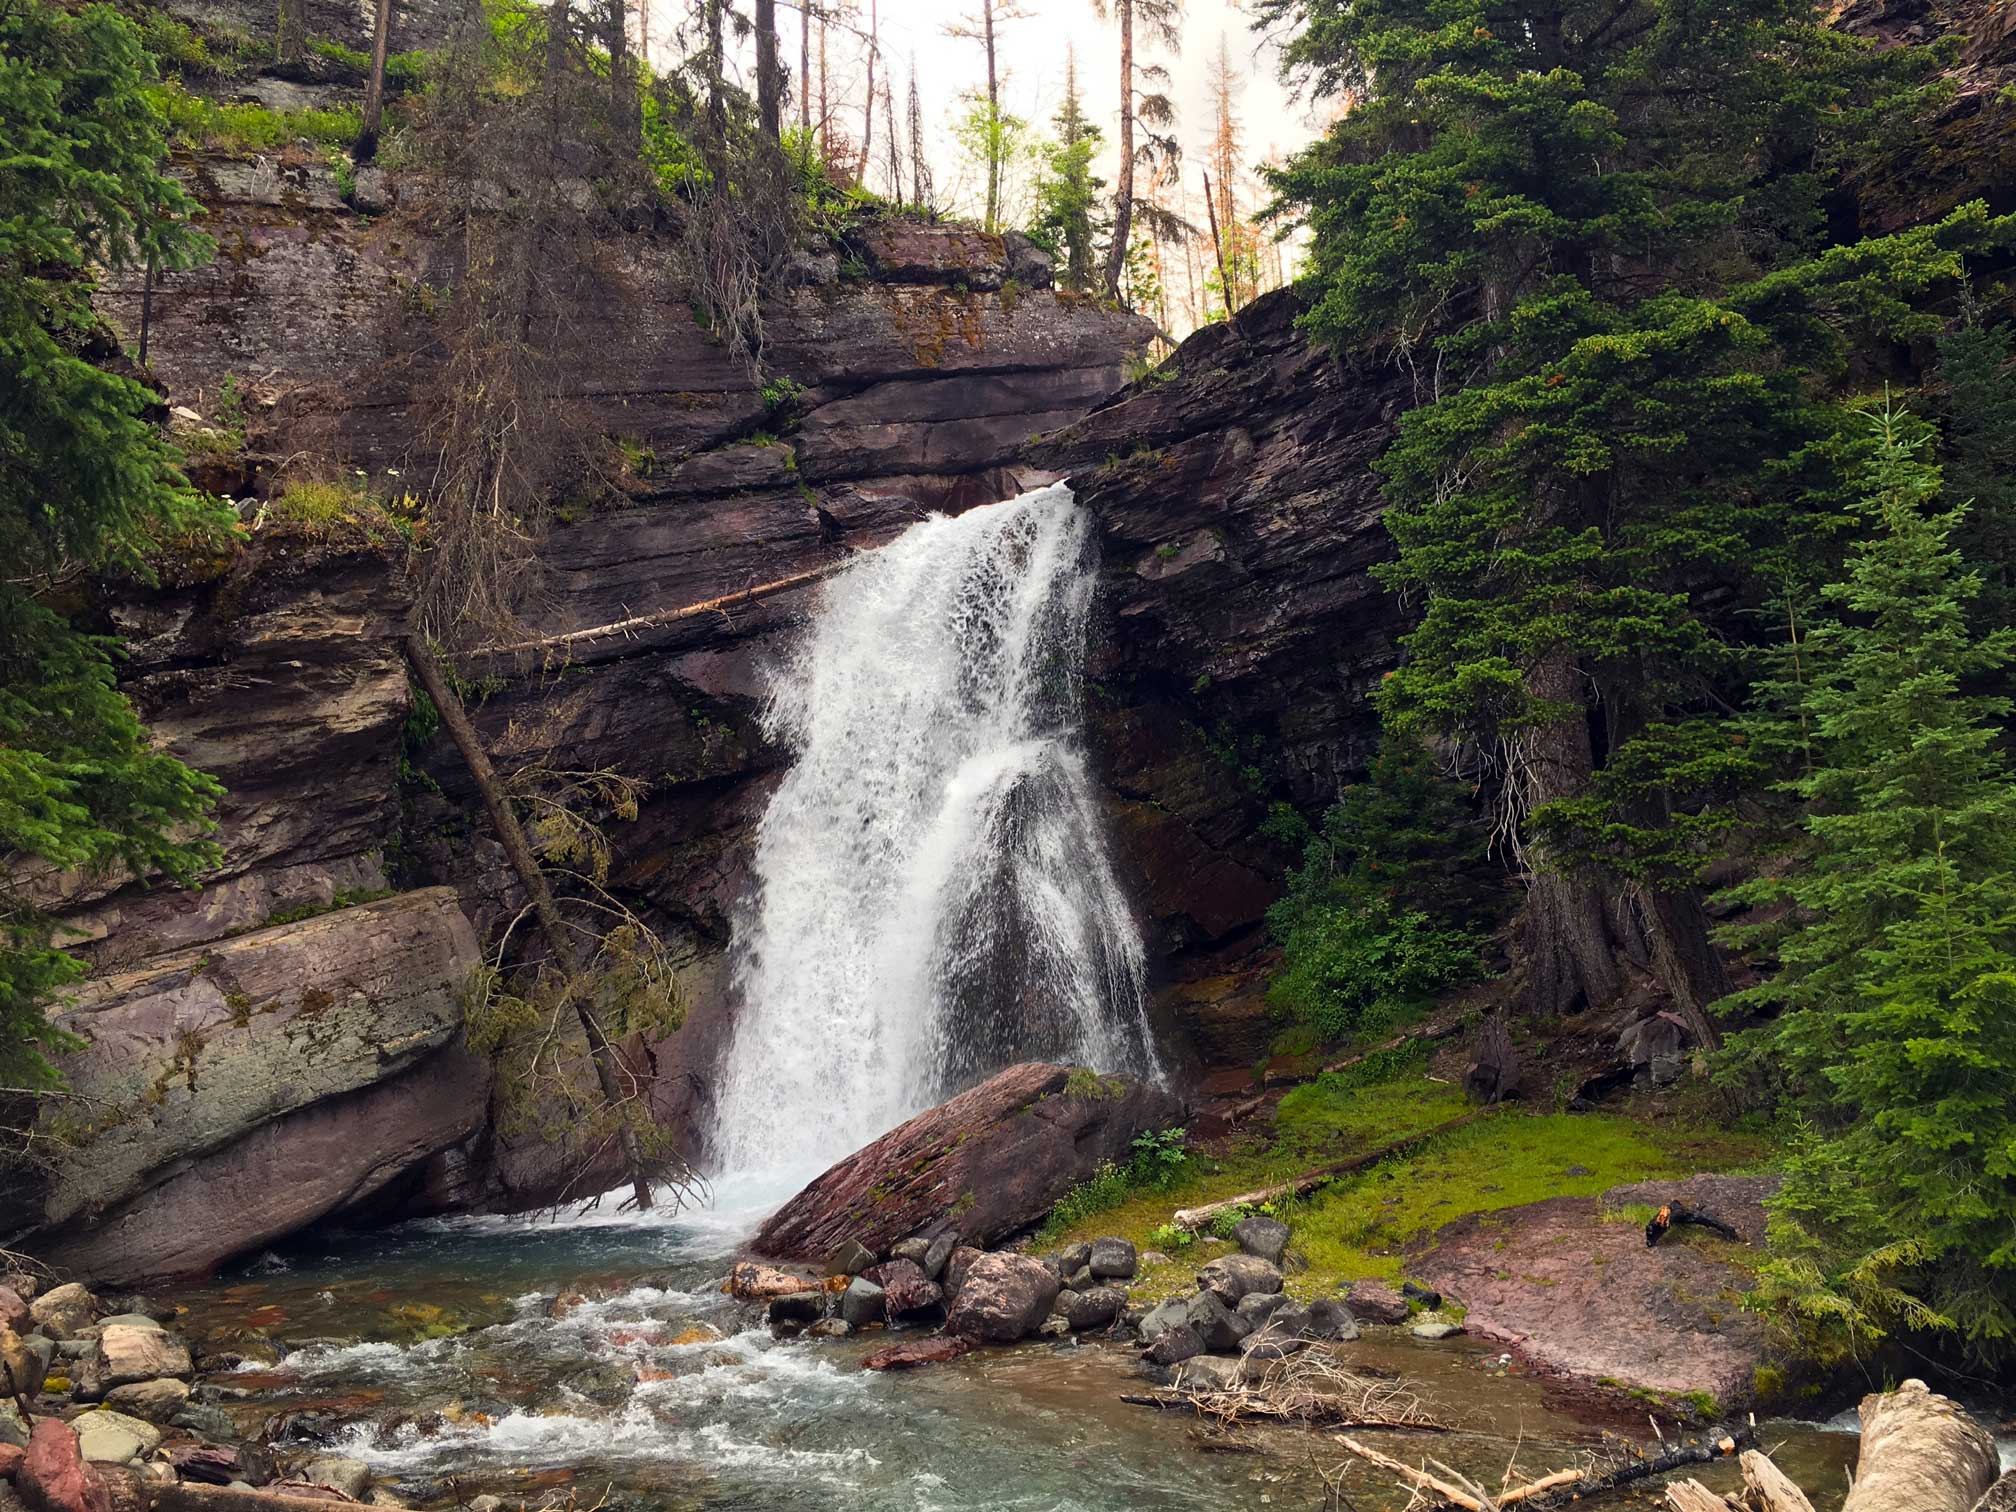 Baring Falls, on the Going-to-the-Sun Road.